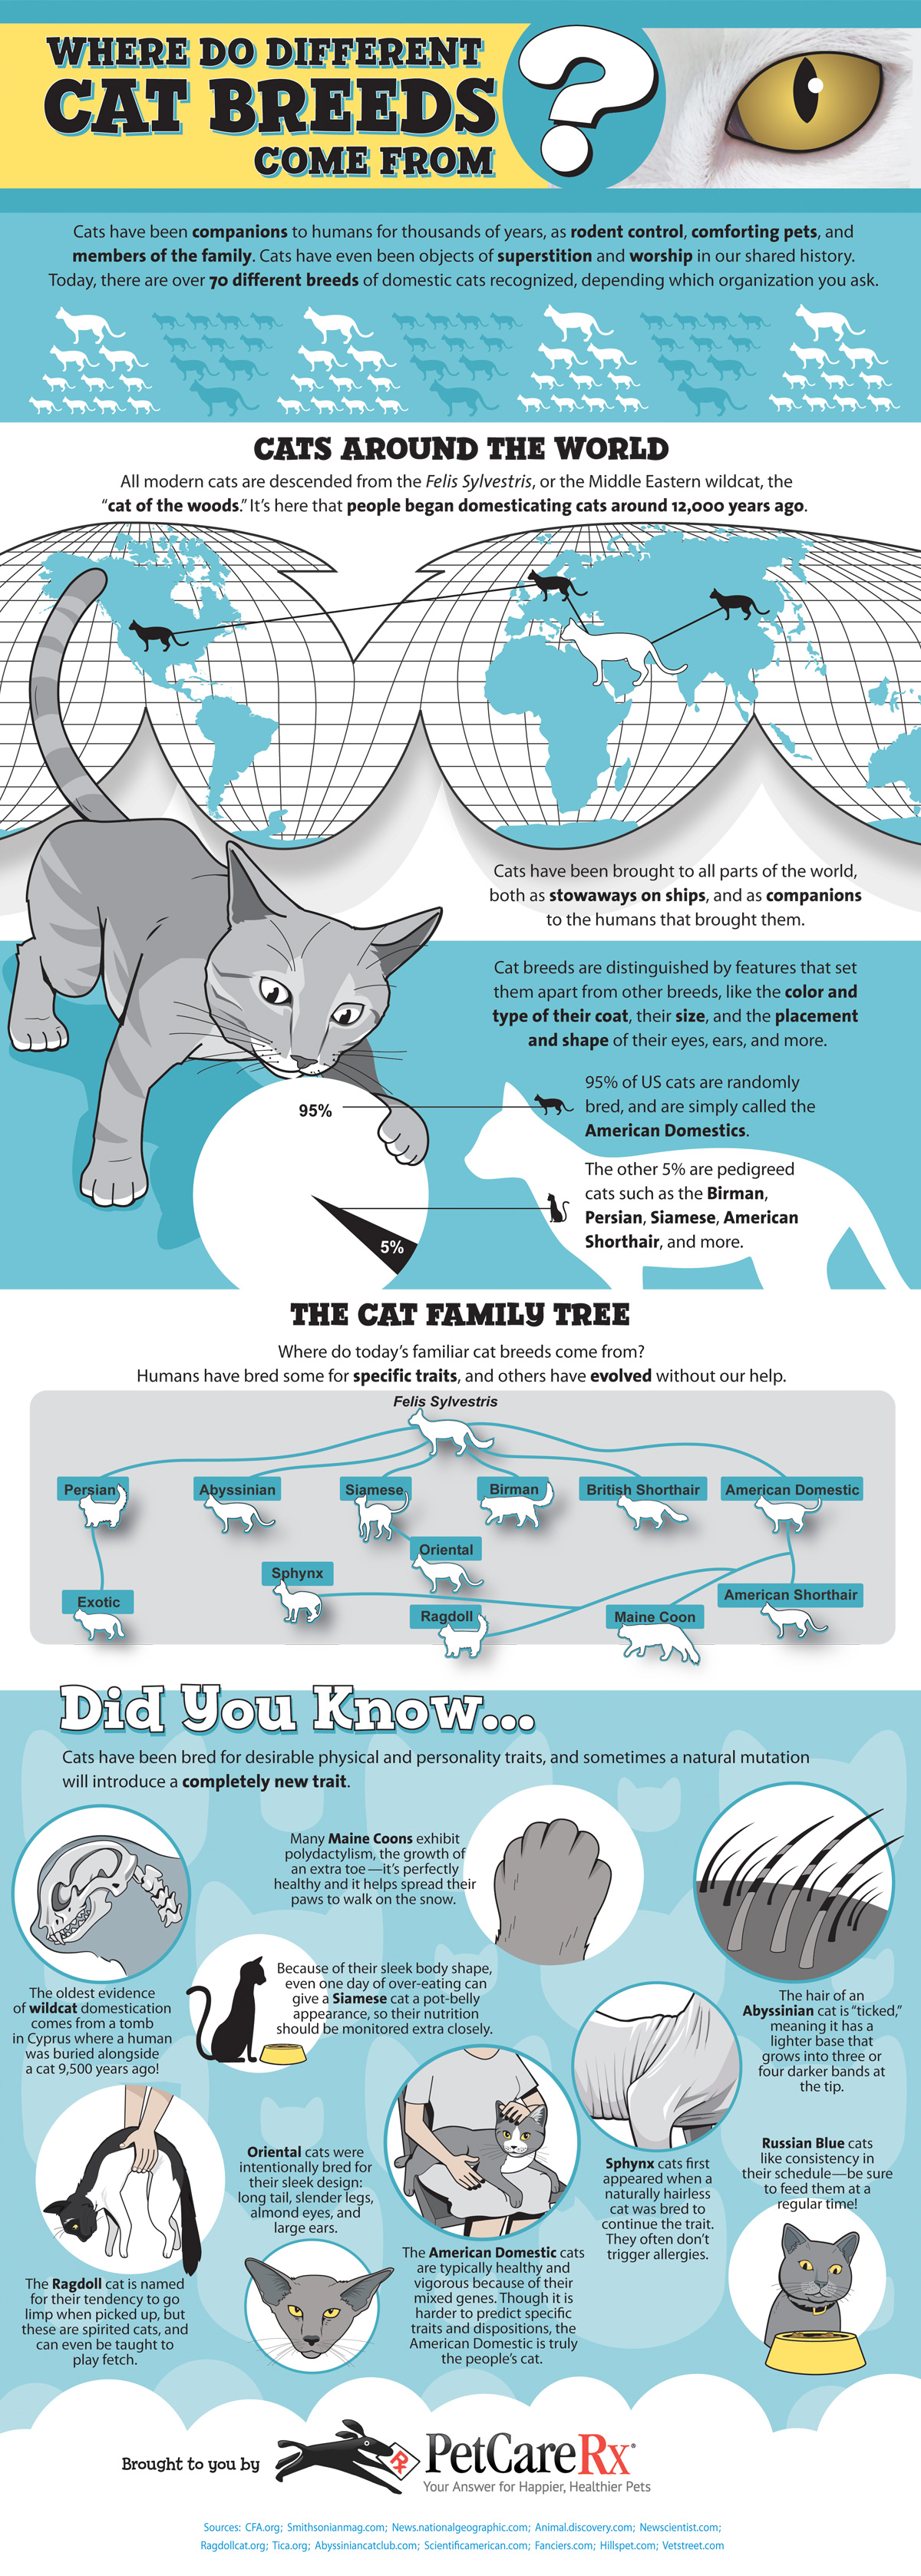 Where Cat Breeds Come From